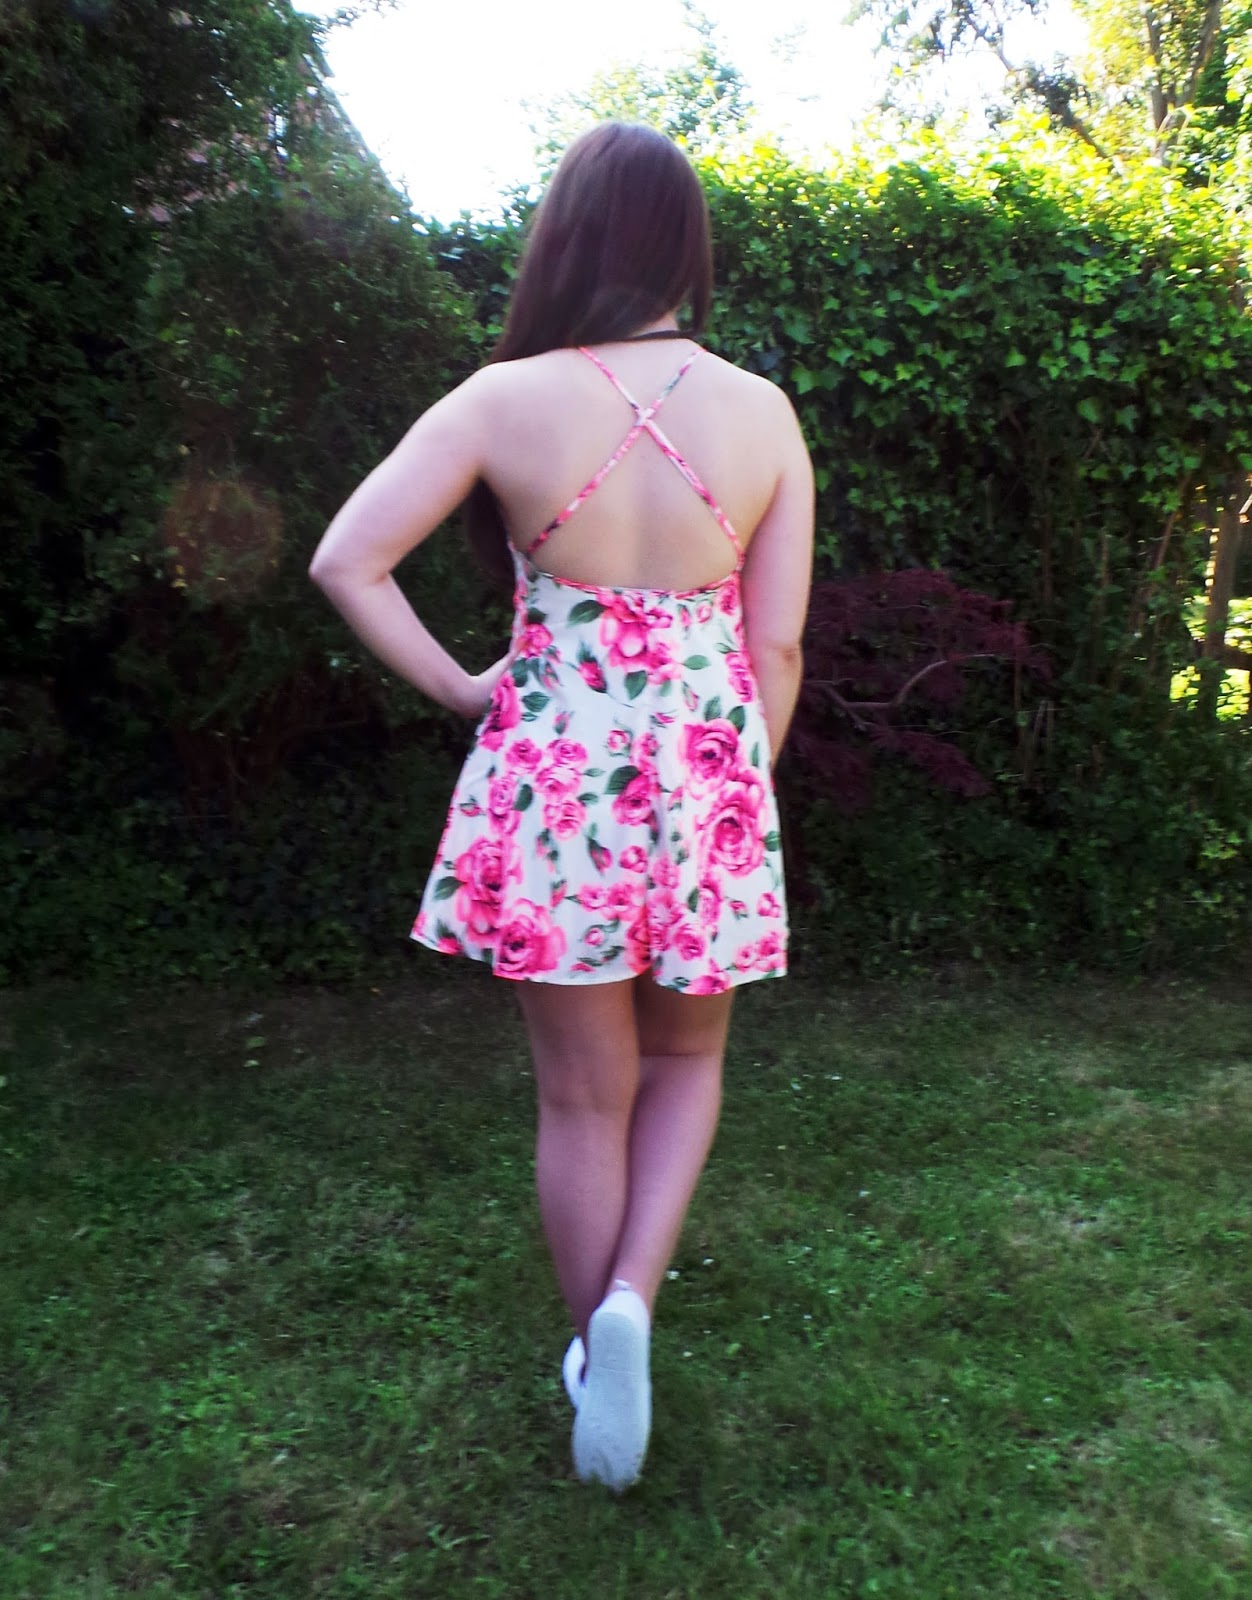 fashion blog, uk fashion blogger, uk fashion blog, fashion bloggers, fashion and lifestyle blog, lauras all made up blog, outfit post, fashion union dress, swing dress, floral print dress, spring summer 2014 trends